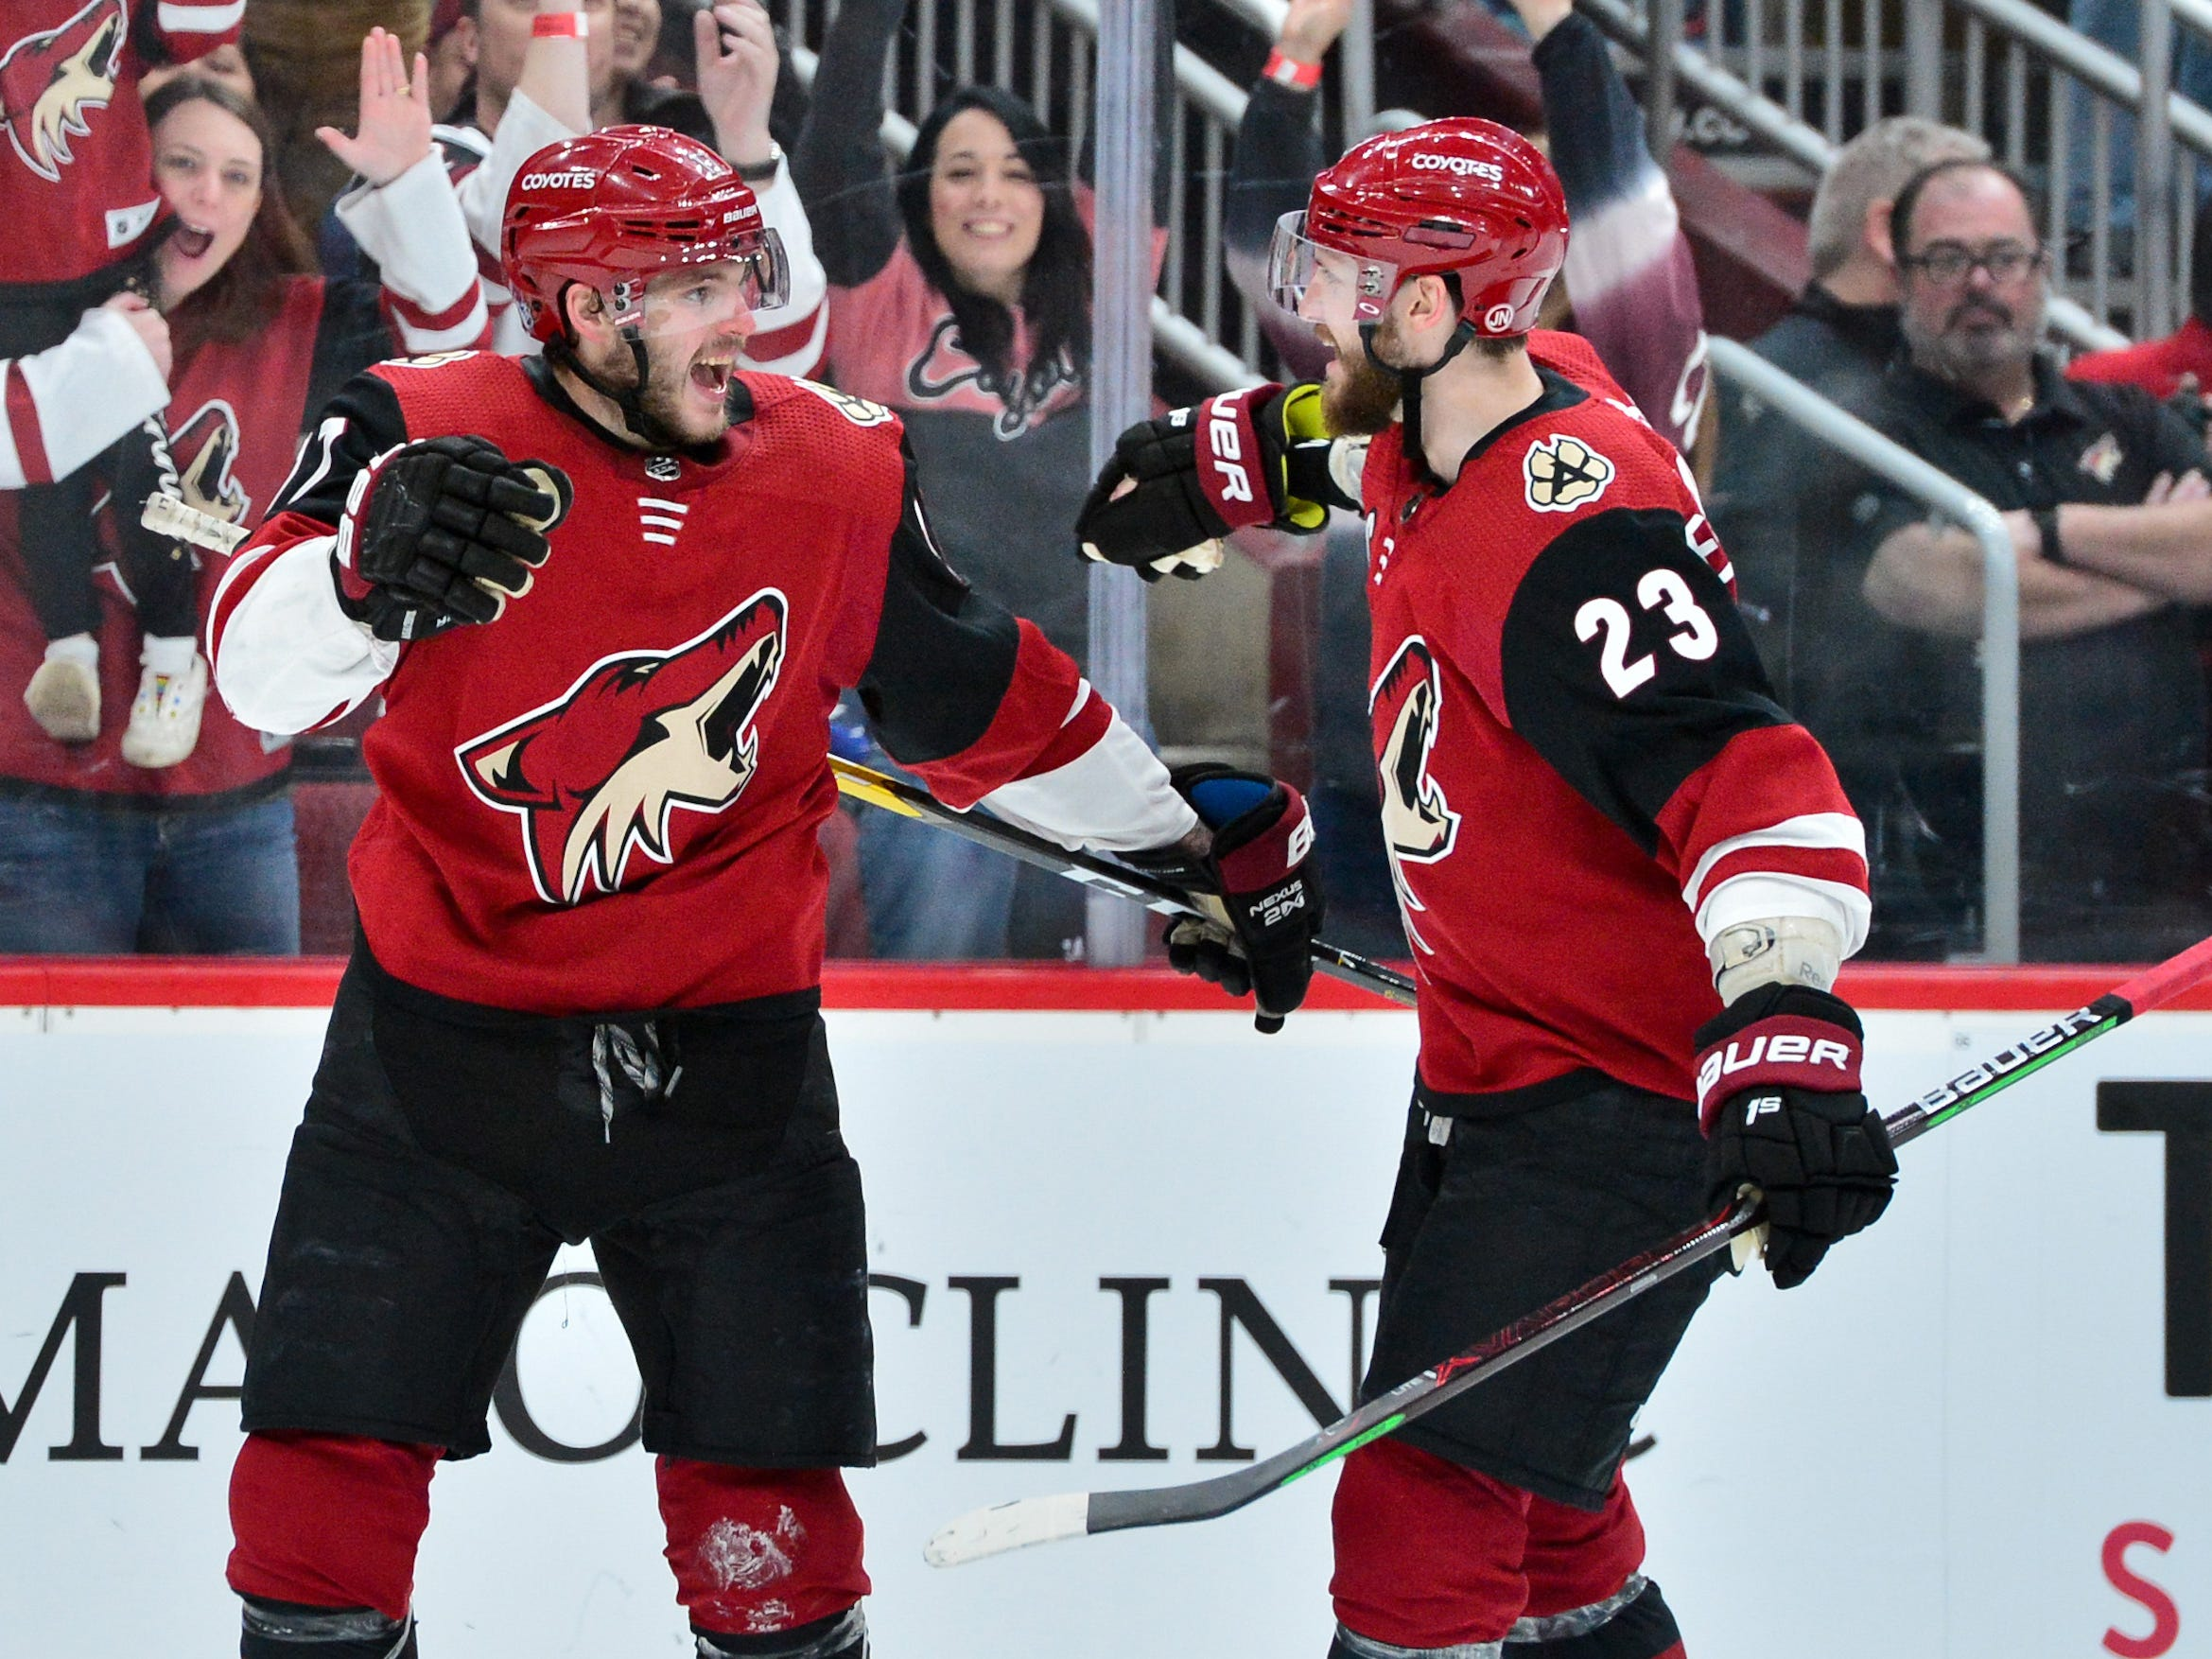 Feb 28, 2019; Glendale, AZ, USA; Arizona Coyotes center Alex Galchenyuk (17) celebrates with defenseman Oliver Ekman-Larsson (23) after scoring a power play goal in the second period against the Vancouver Canucks at Gila River Arena.